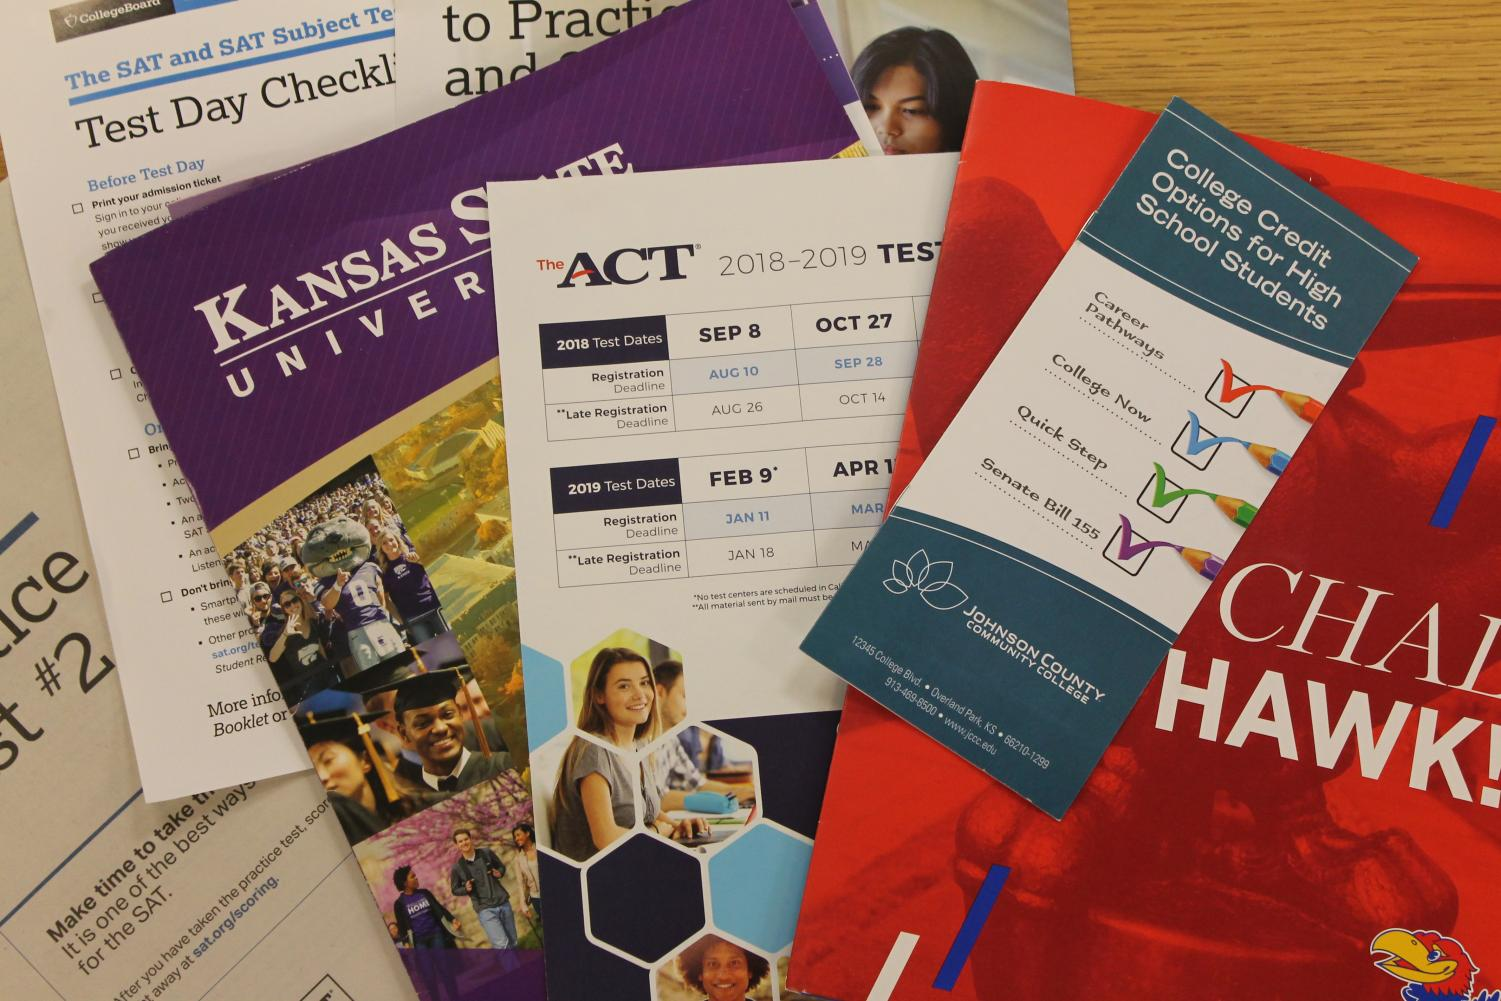 In edition to taking the ACT and SAT, De Soto High School offers Pre-ACT in hopes to prepare students.